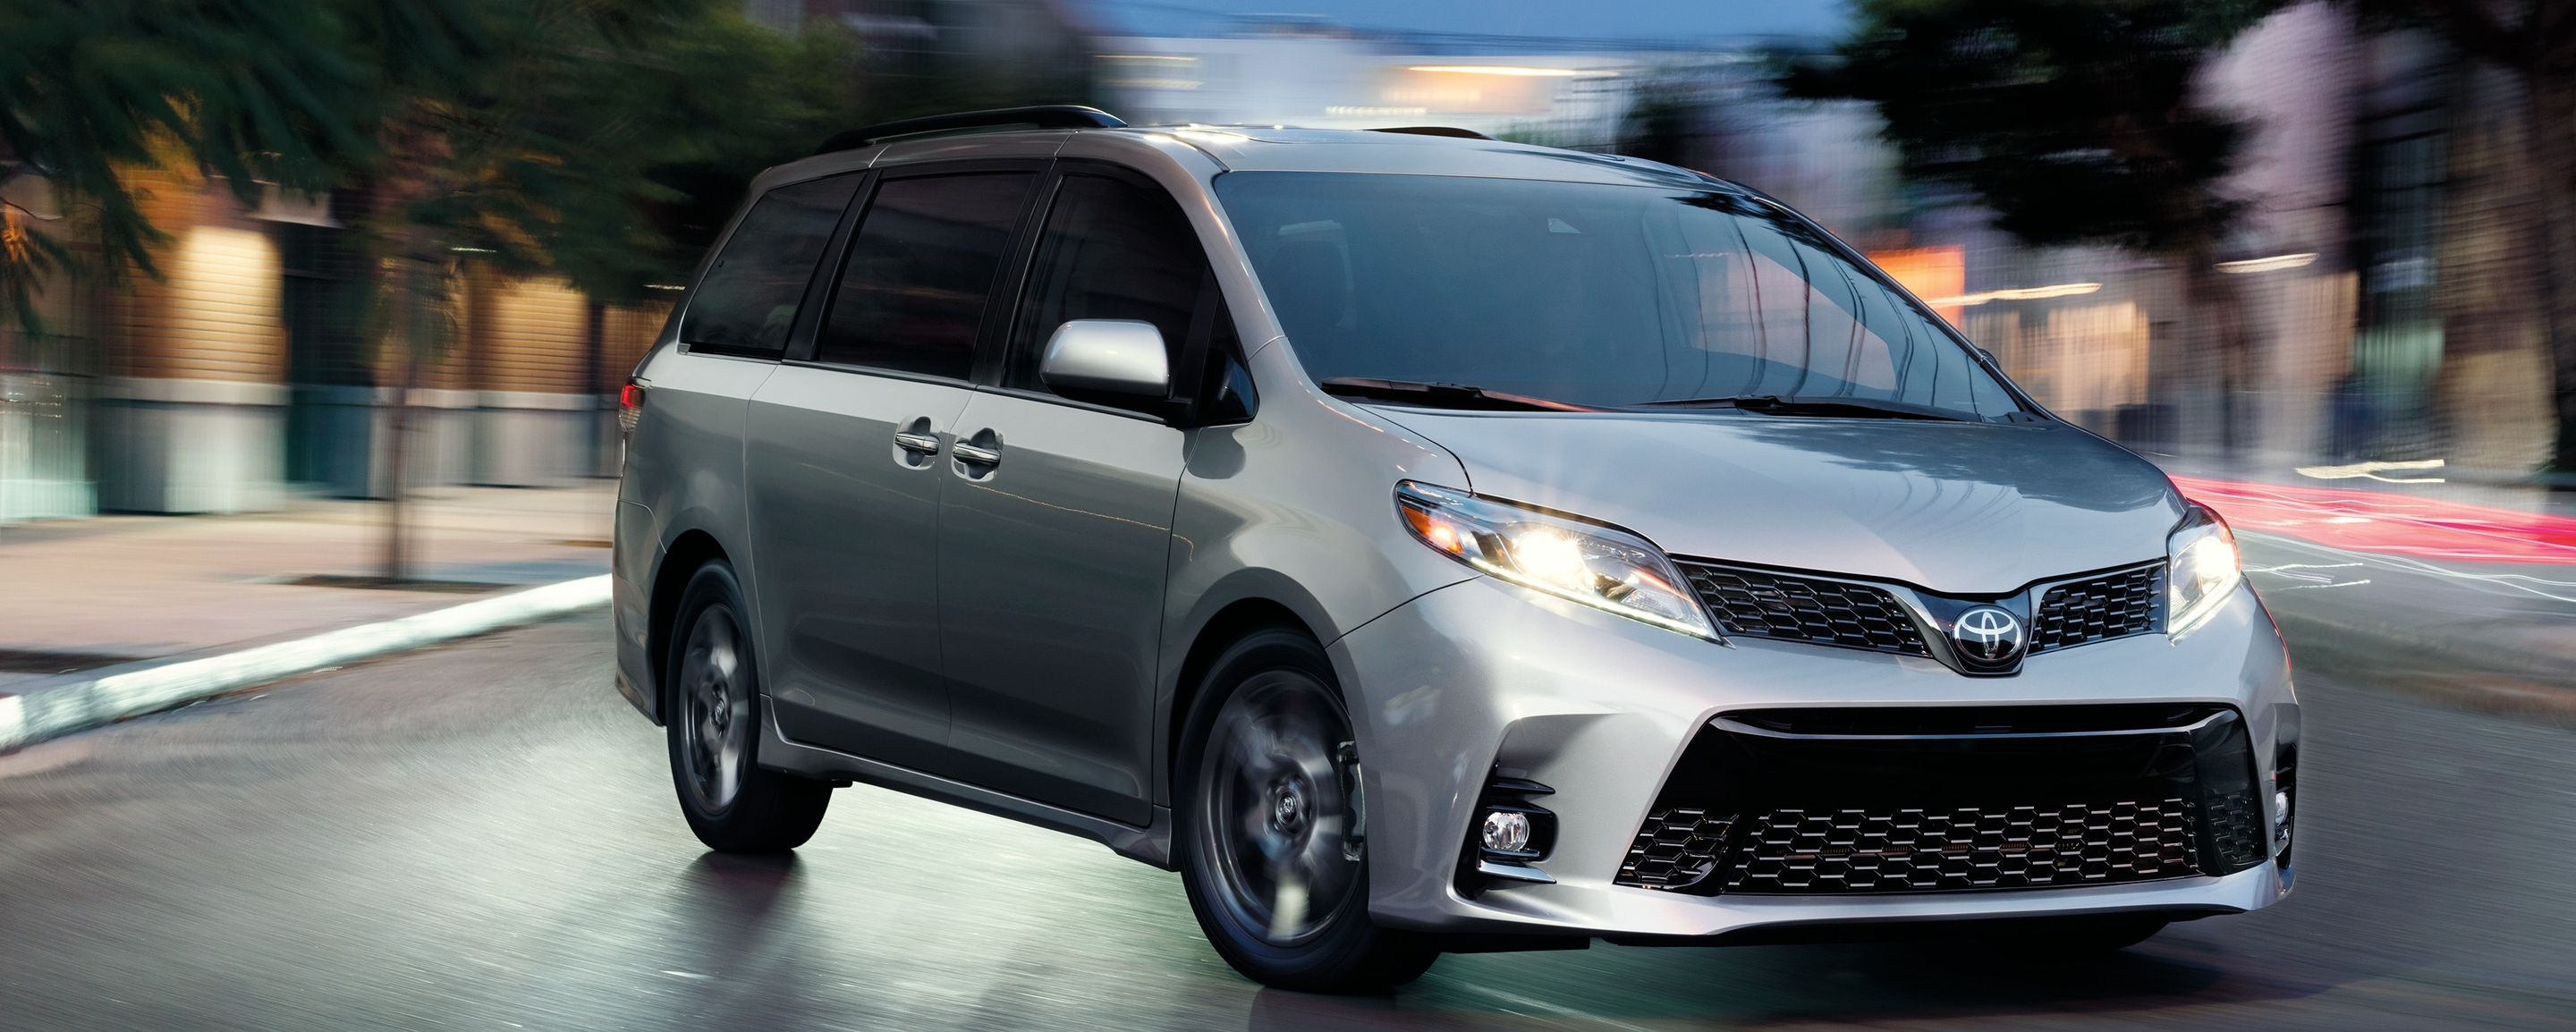 2019 Toyota Sienna for Sale in Kansas City, MO